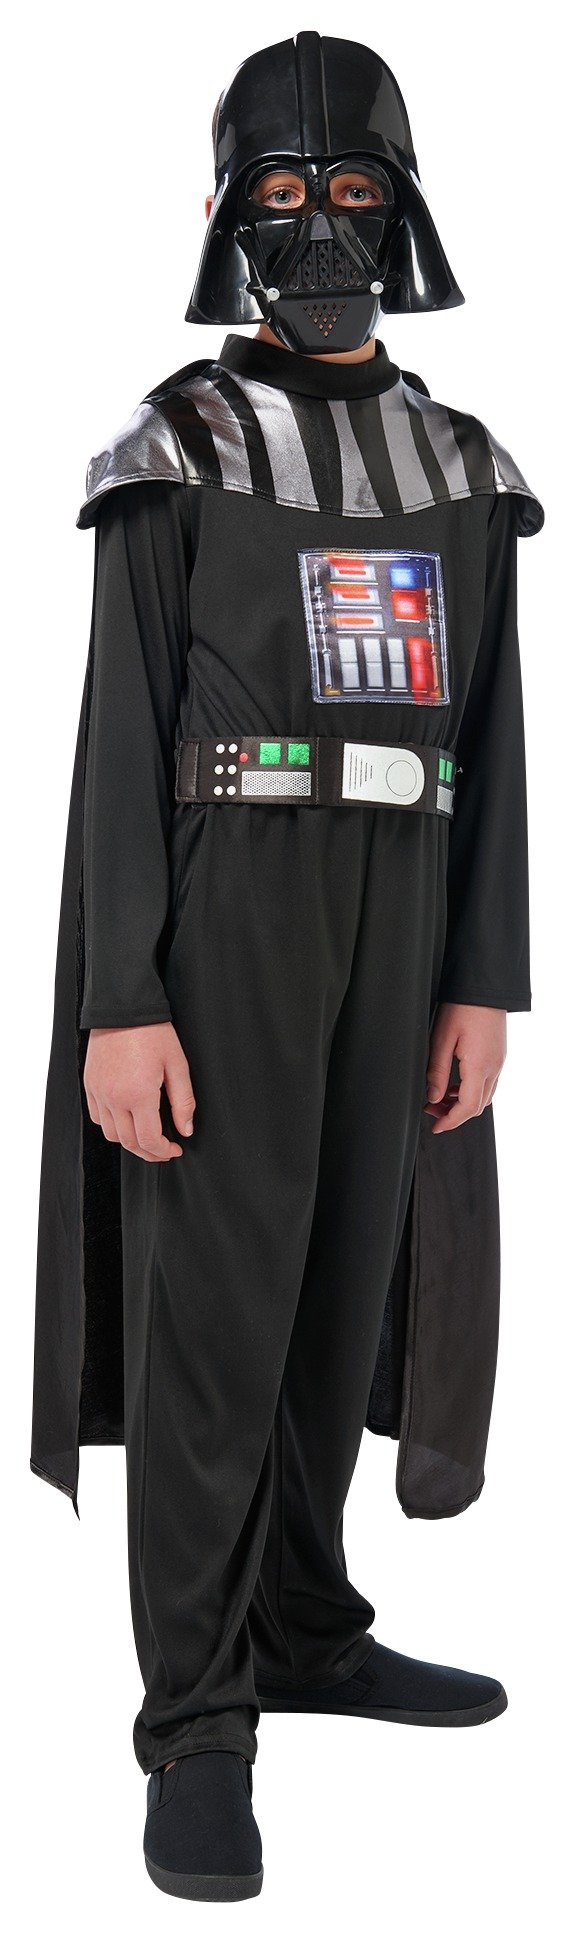 Star Wars Children's Darth Vader Fancy Dress - 9-10 Years